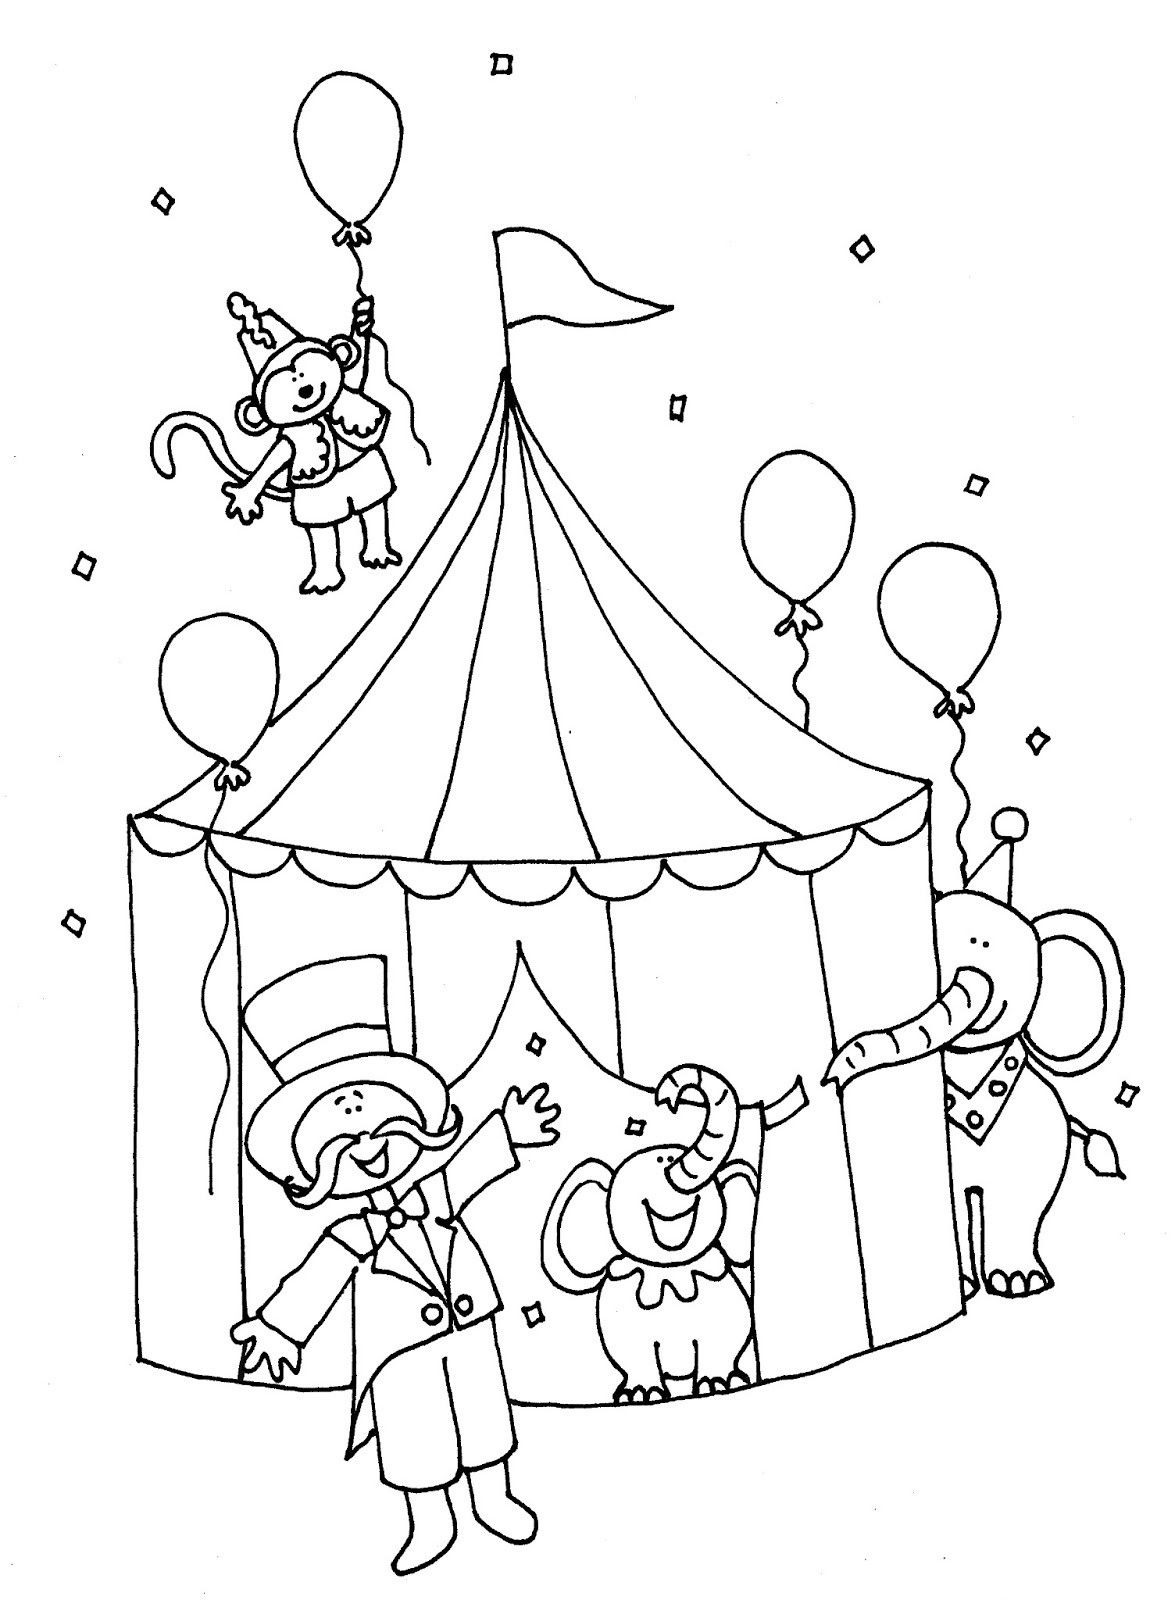 Carnival Coloring Pages Best Of Printable Circus